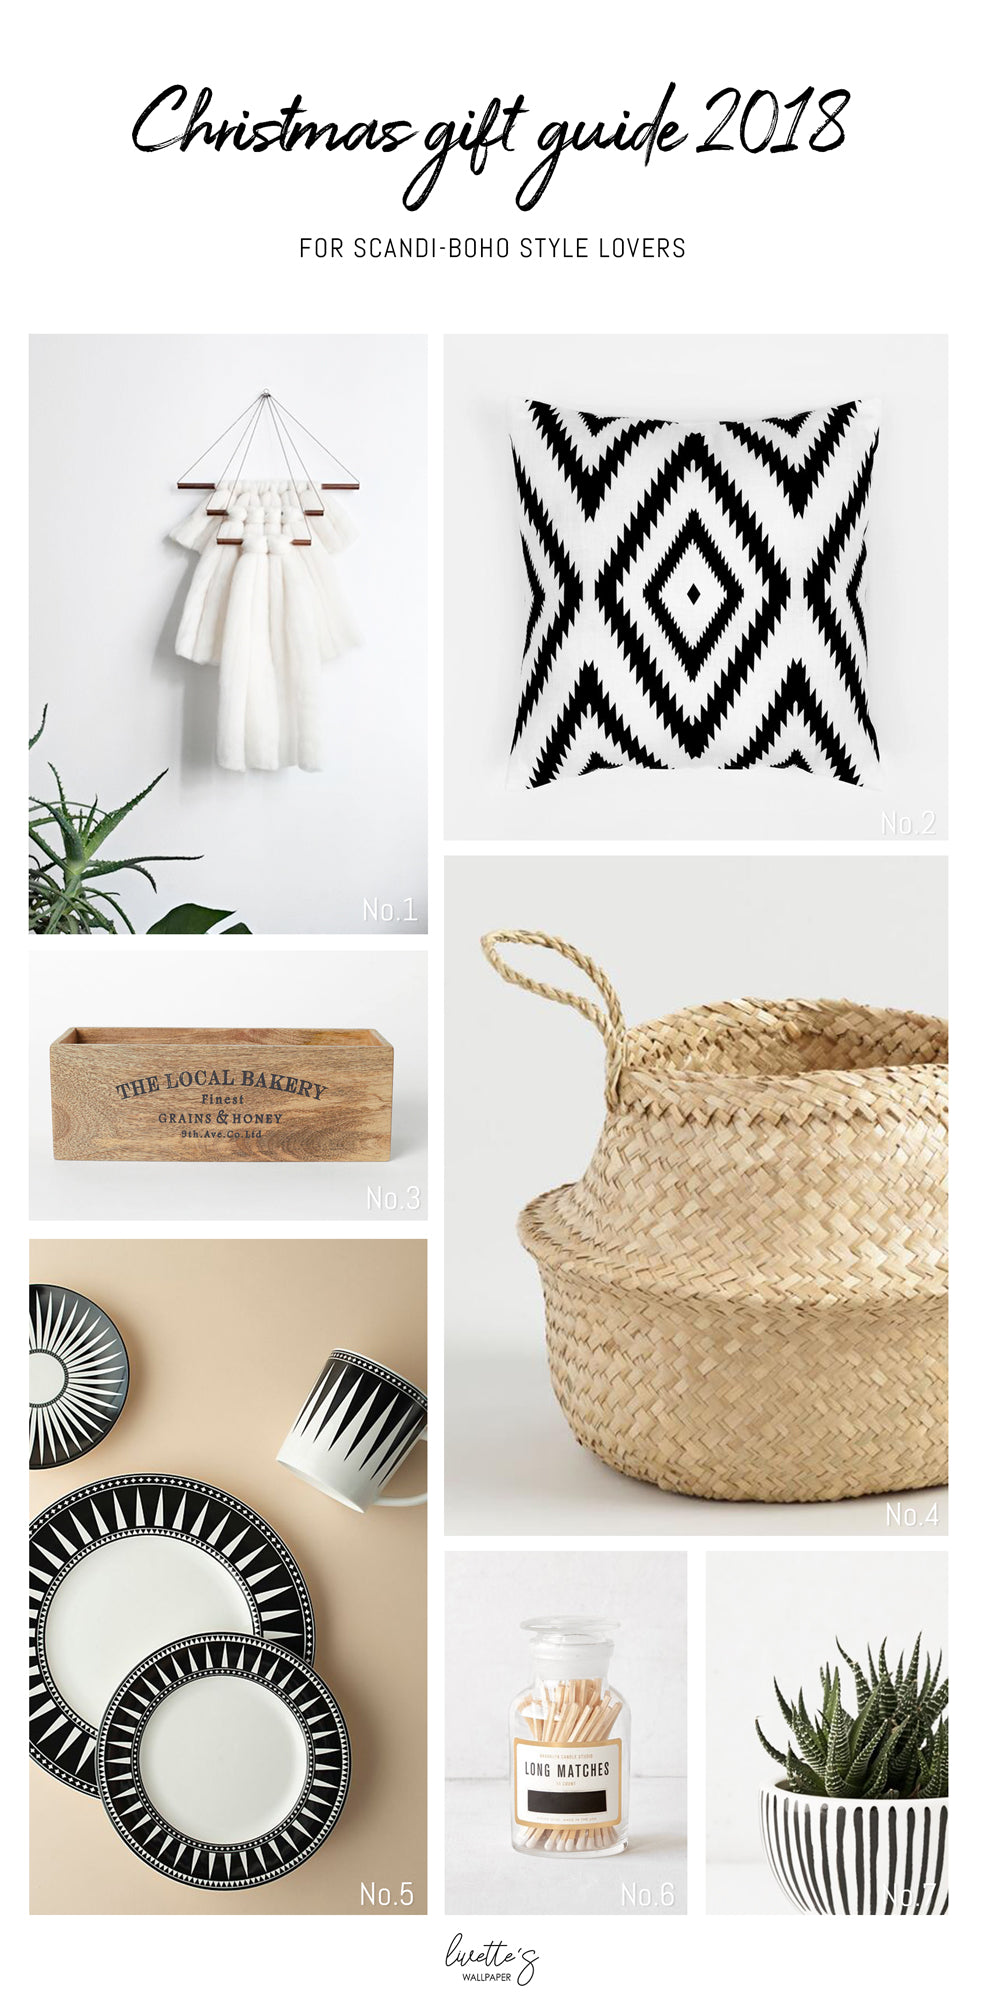 Christmas gift ideas for Scandi Boho interior lovers